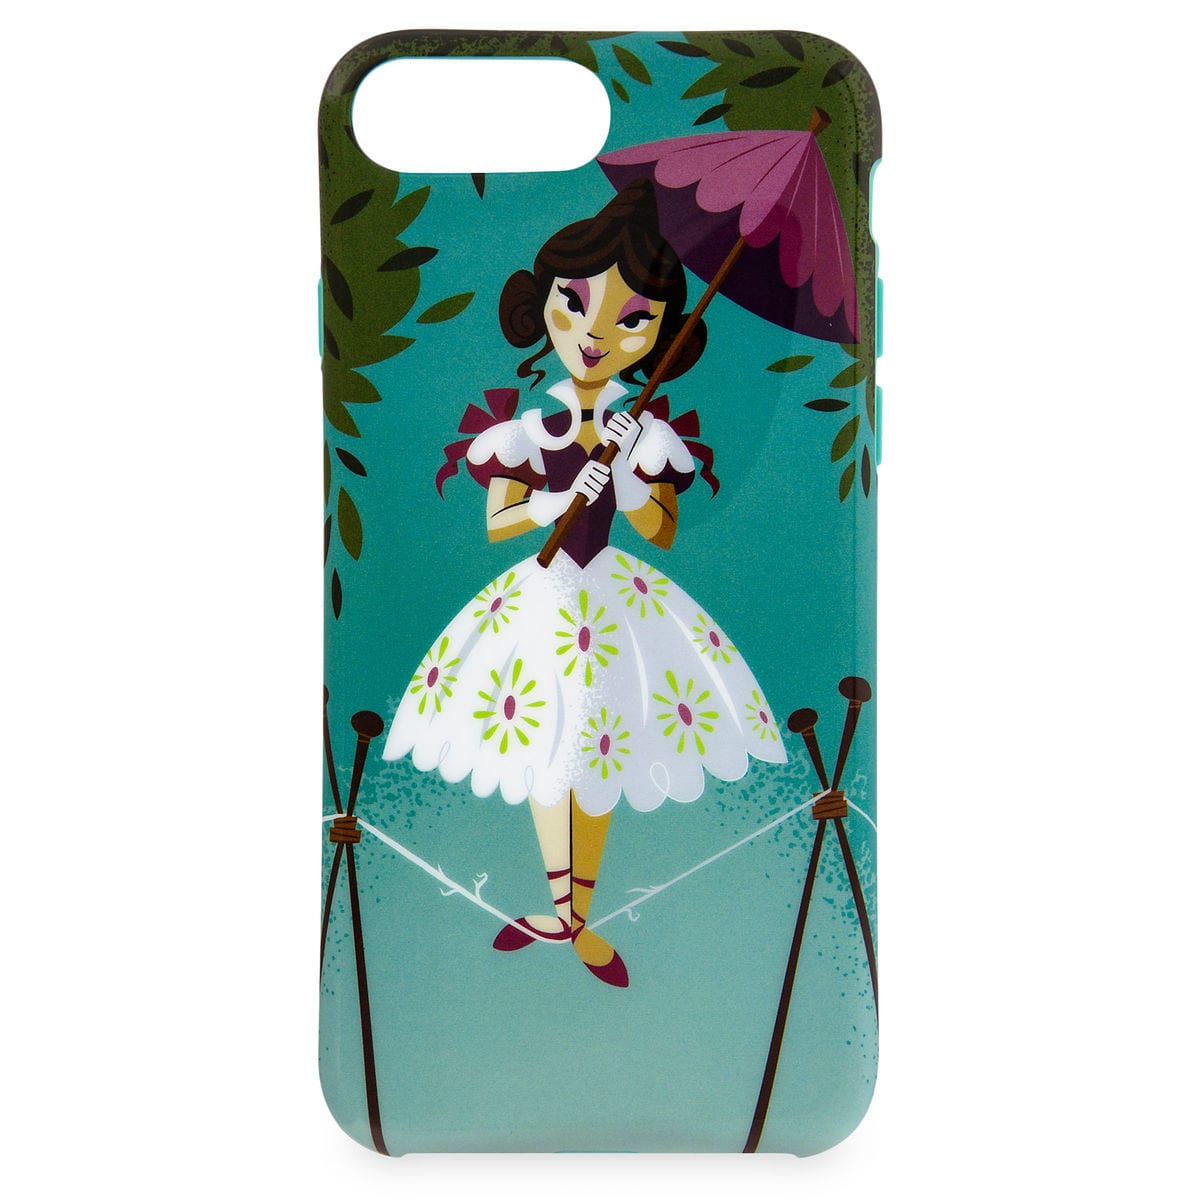 Disney iPhone 8/7/6s PLUS Case - The Haunted Mansion Tightrope Walker